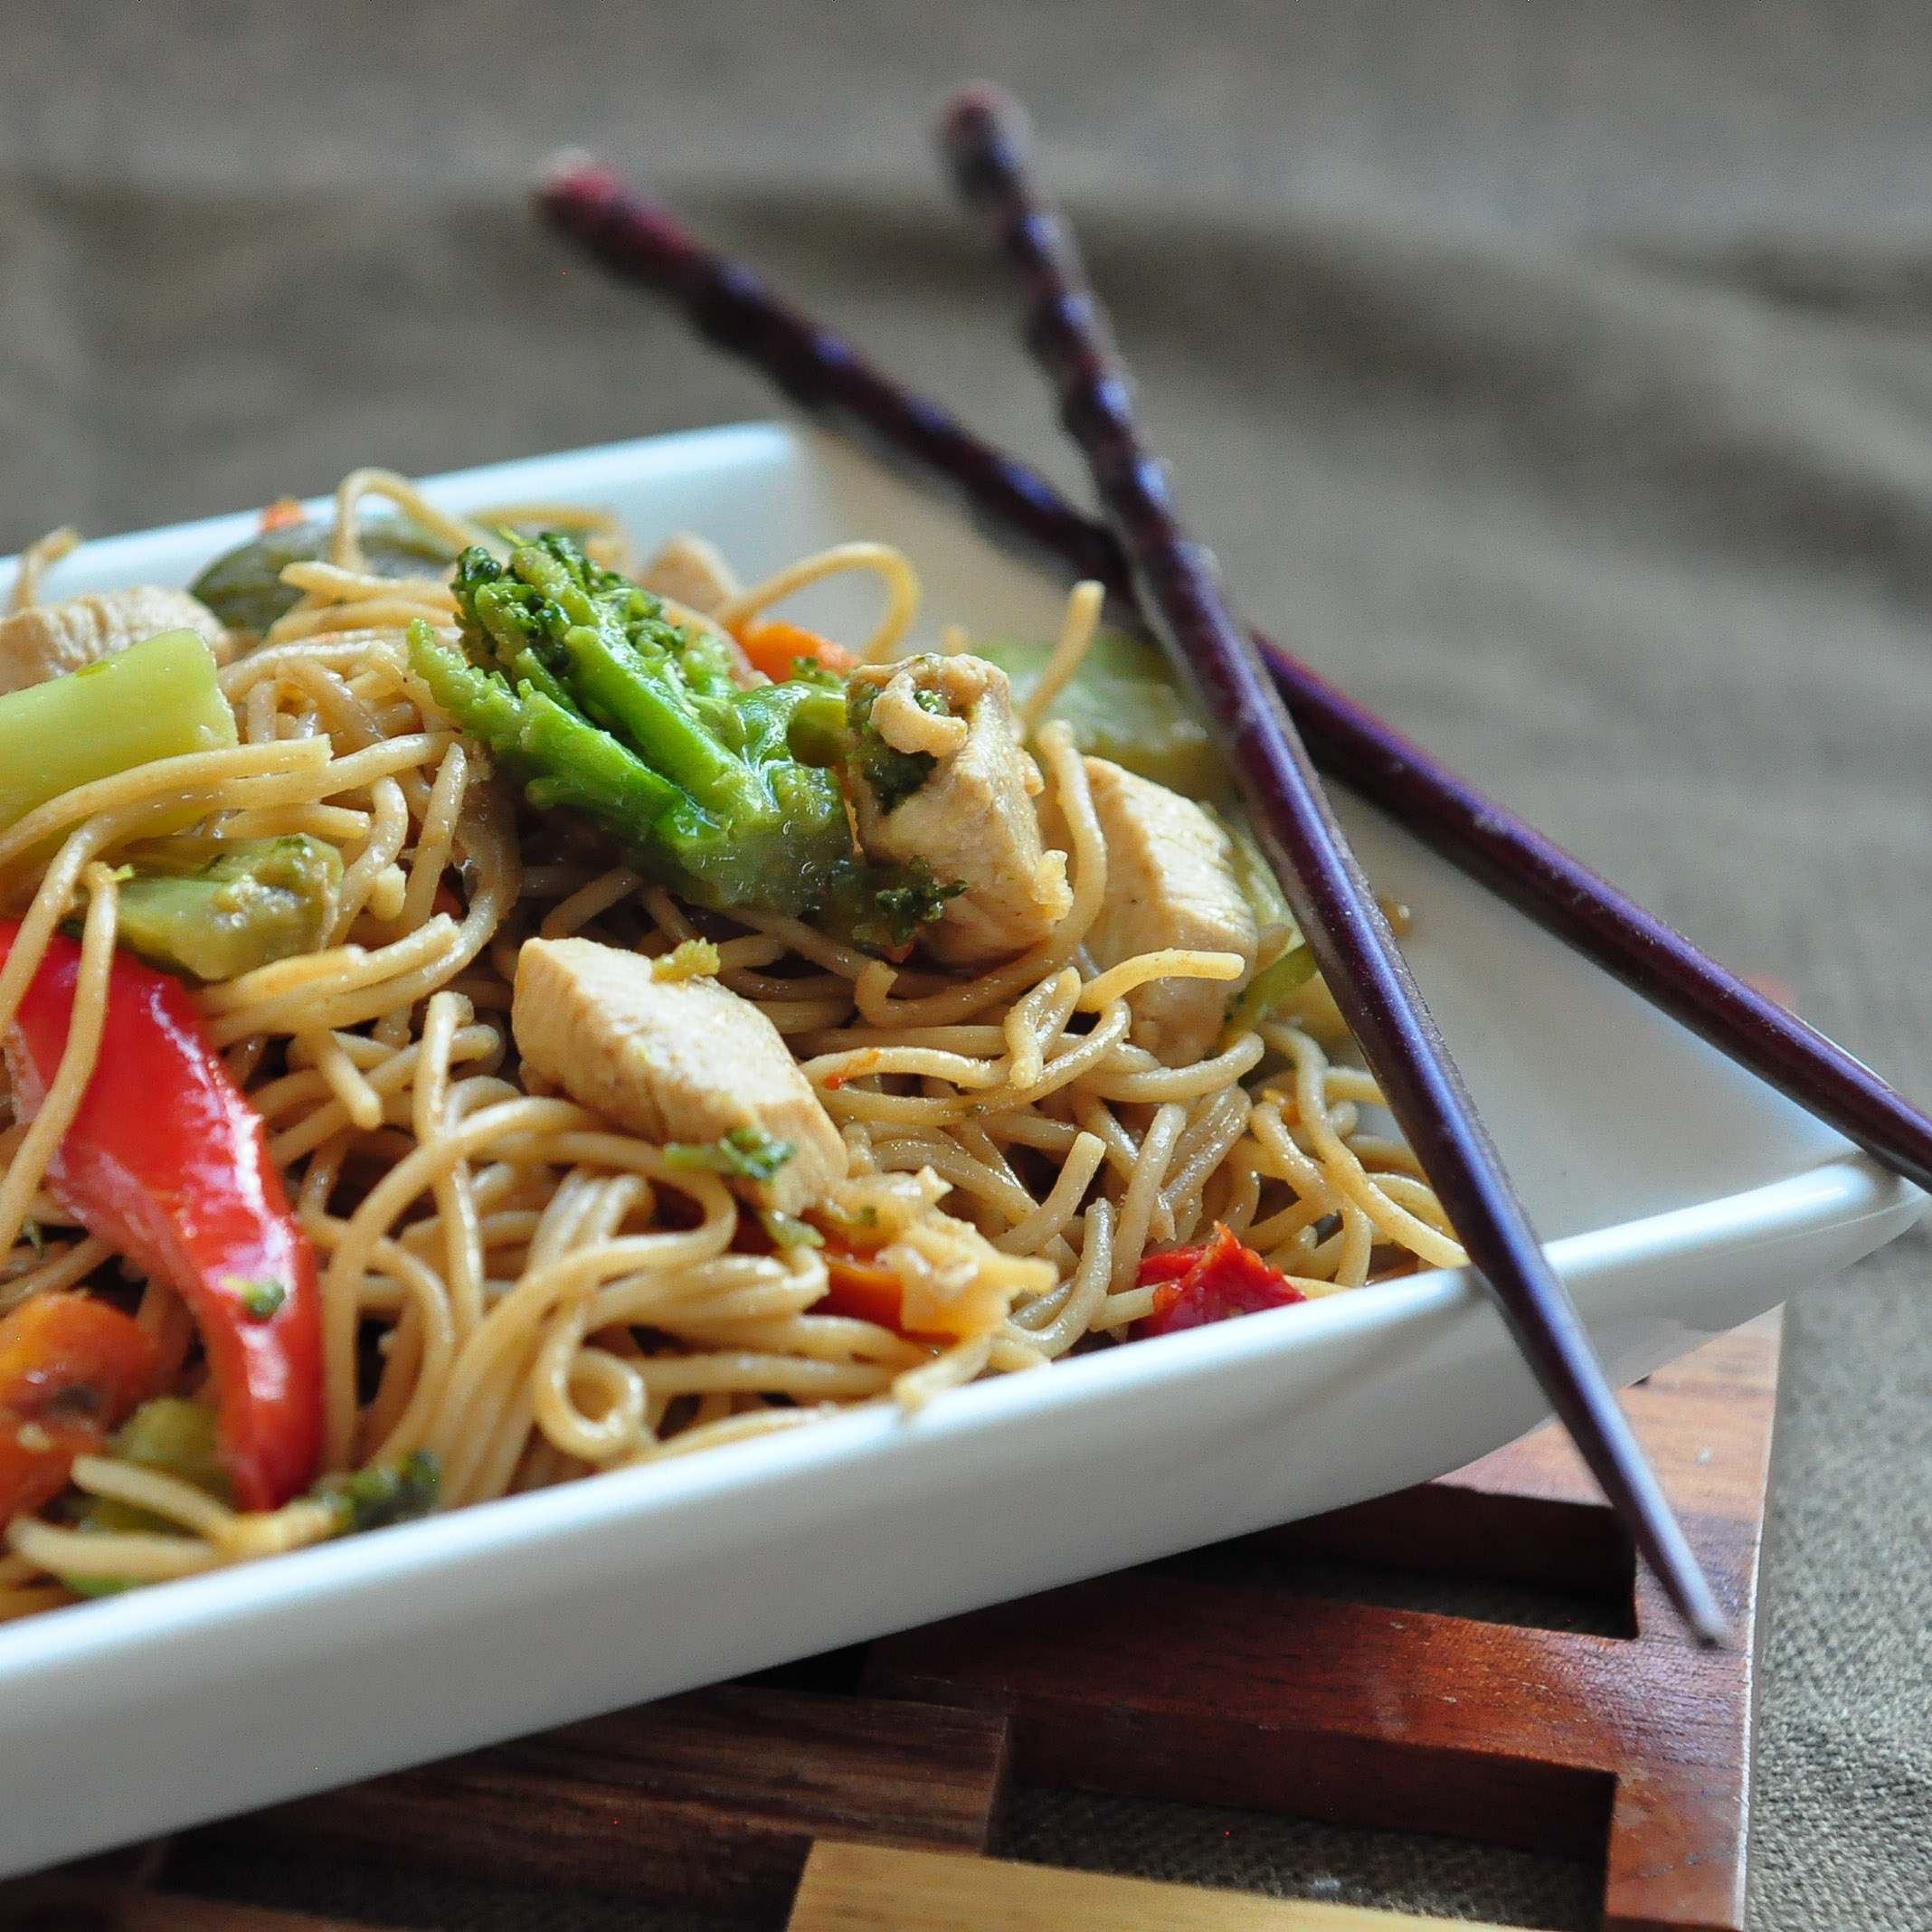 Chinisse Food: Homemade Chicken Lo Mein